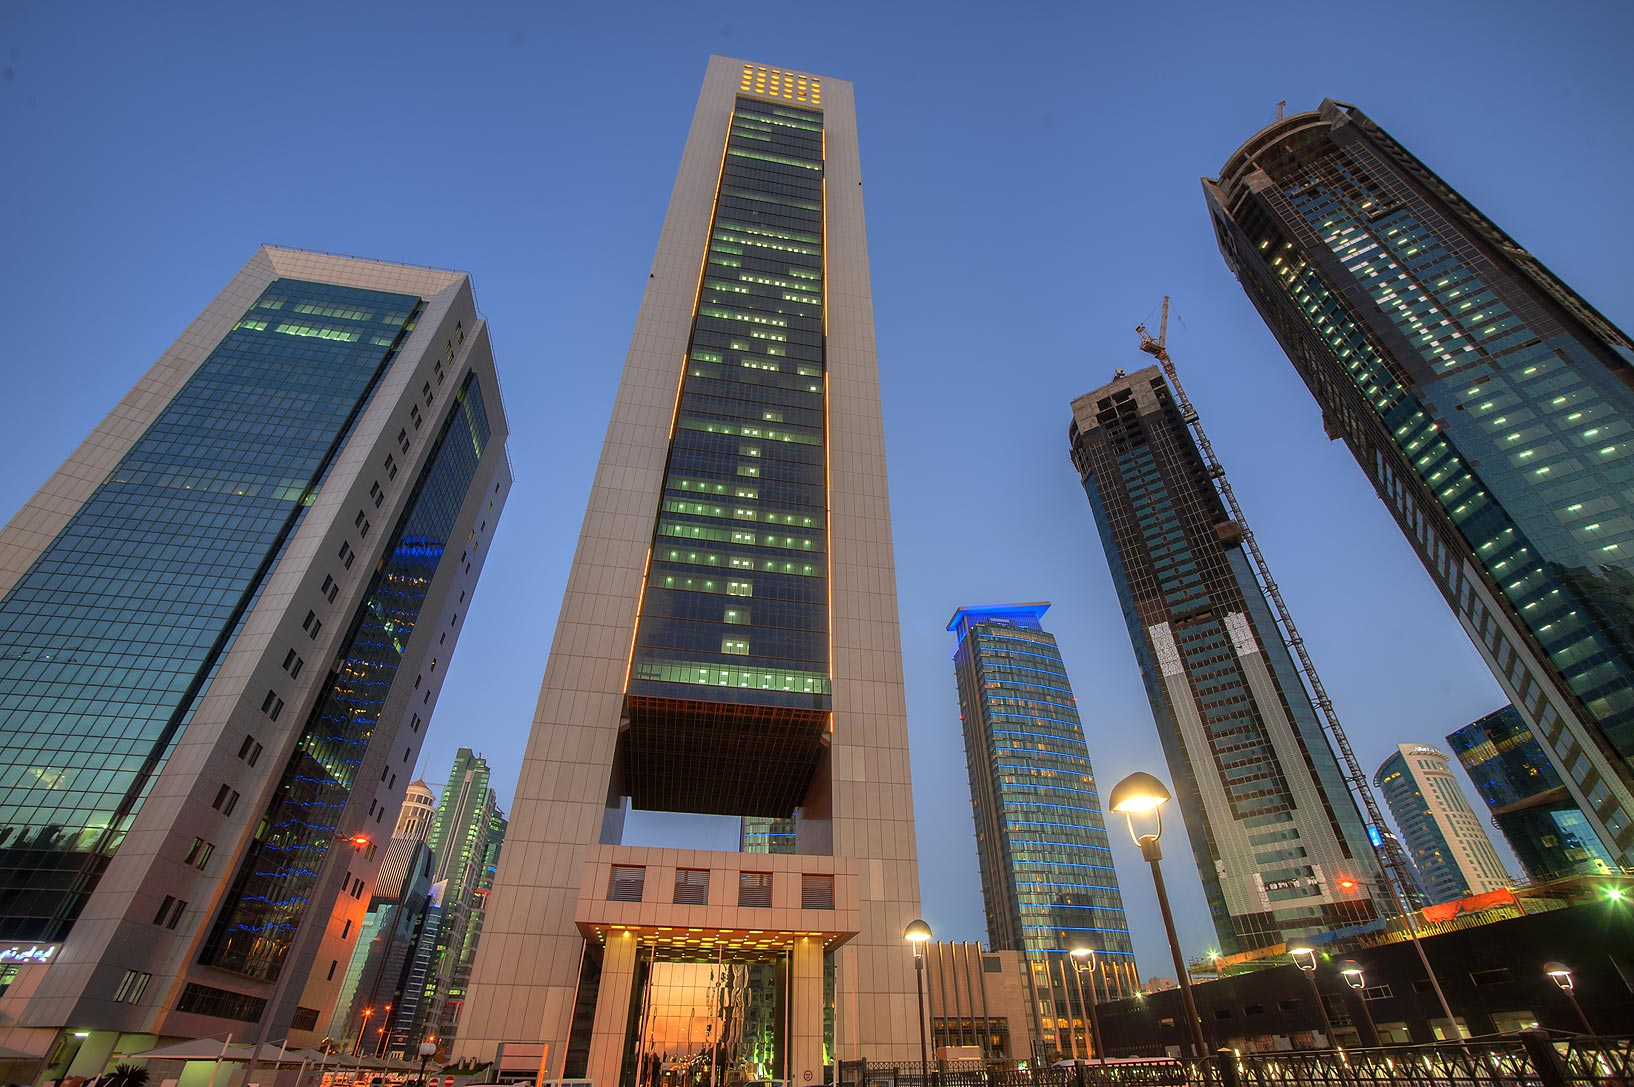 Faisal Tower in West Bay at evening, from Q-Shield head Offices St.. Doha, Qatar